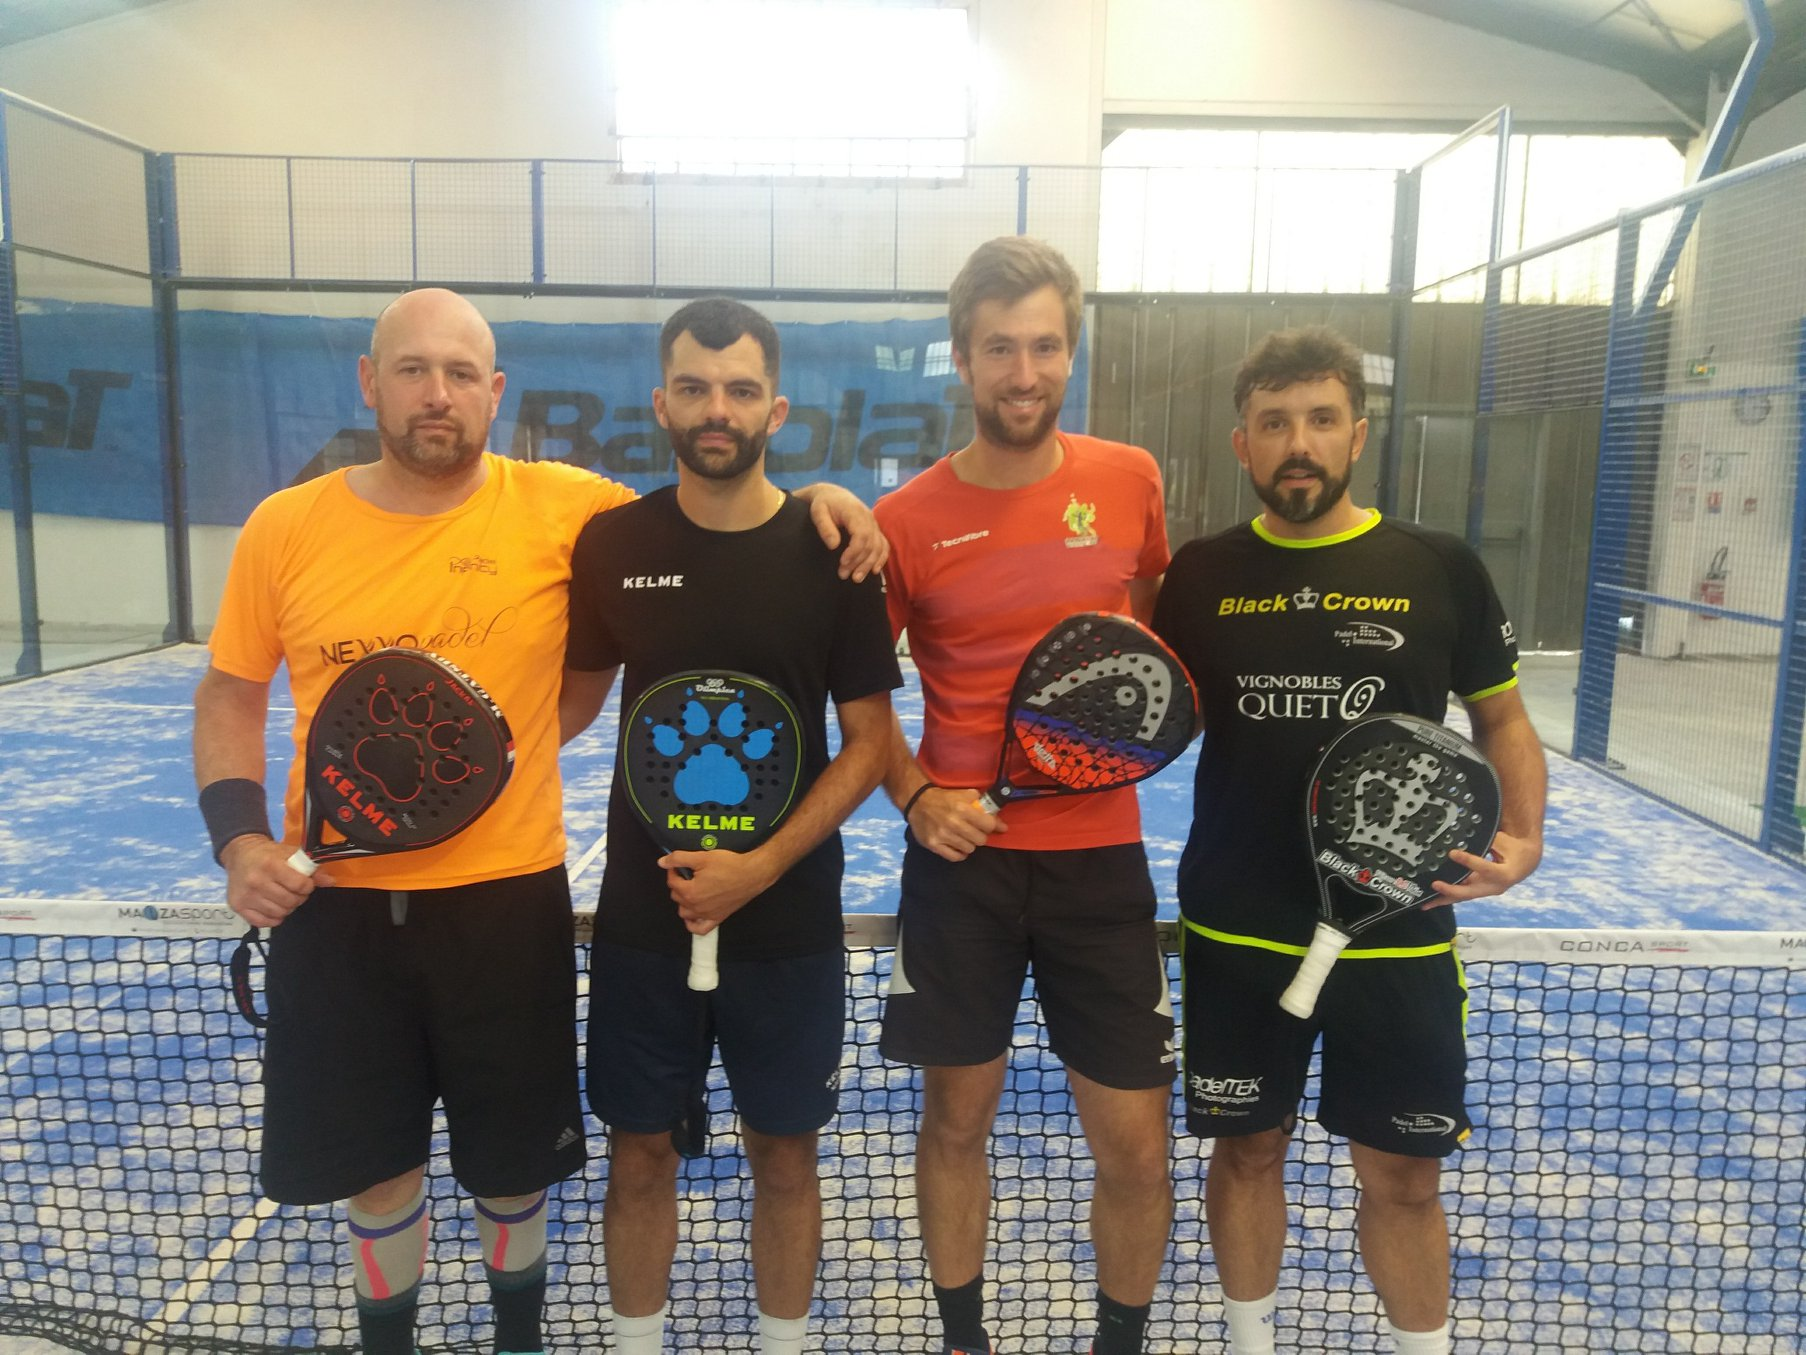 VERGELY / TECLES vinder Toulouse-kvalifikationerne - National Padel Kop